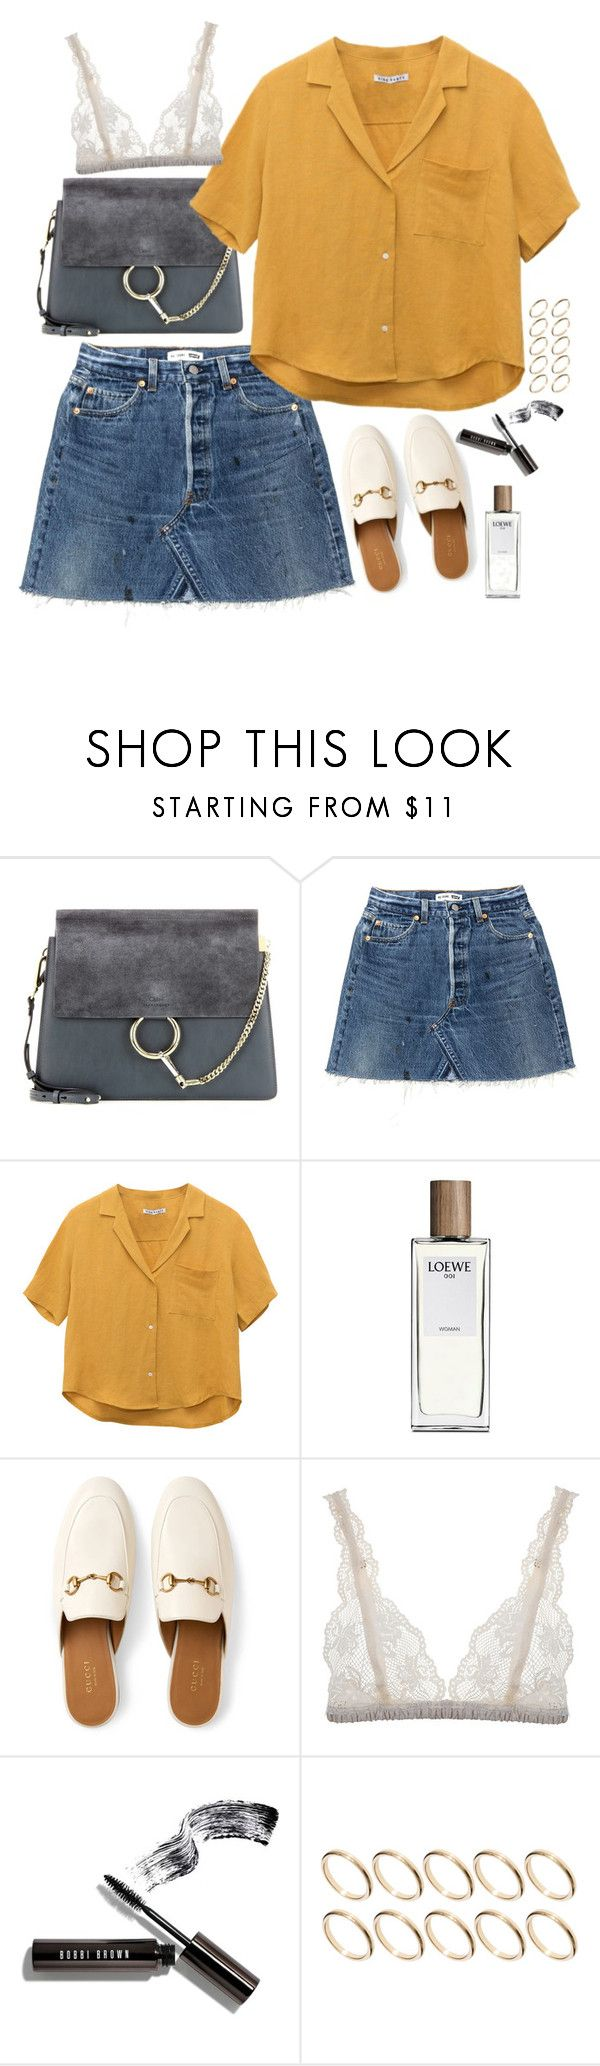 """""""Untitled #1928"""" by samikayy76 ❤ liked on Polyvore featuring Chloé, Loewe, Gucci, Lonely, Bobbi Brown Cosmetics and ASOS"""